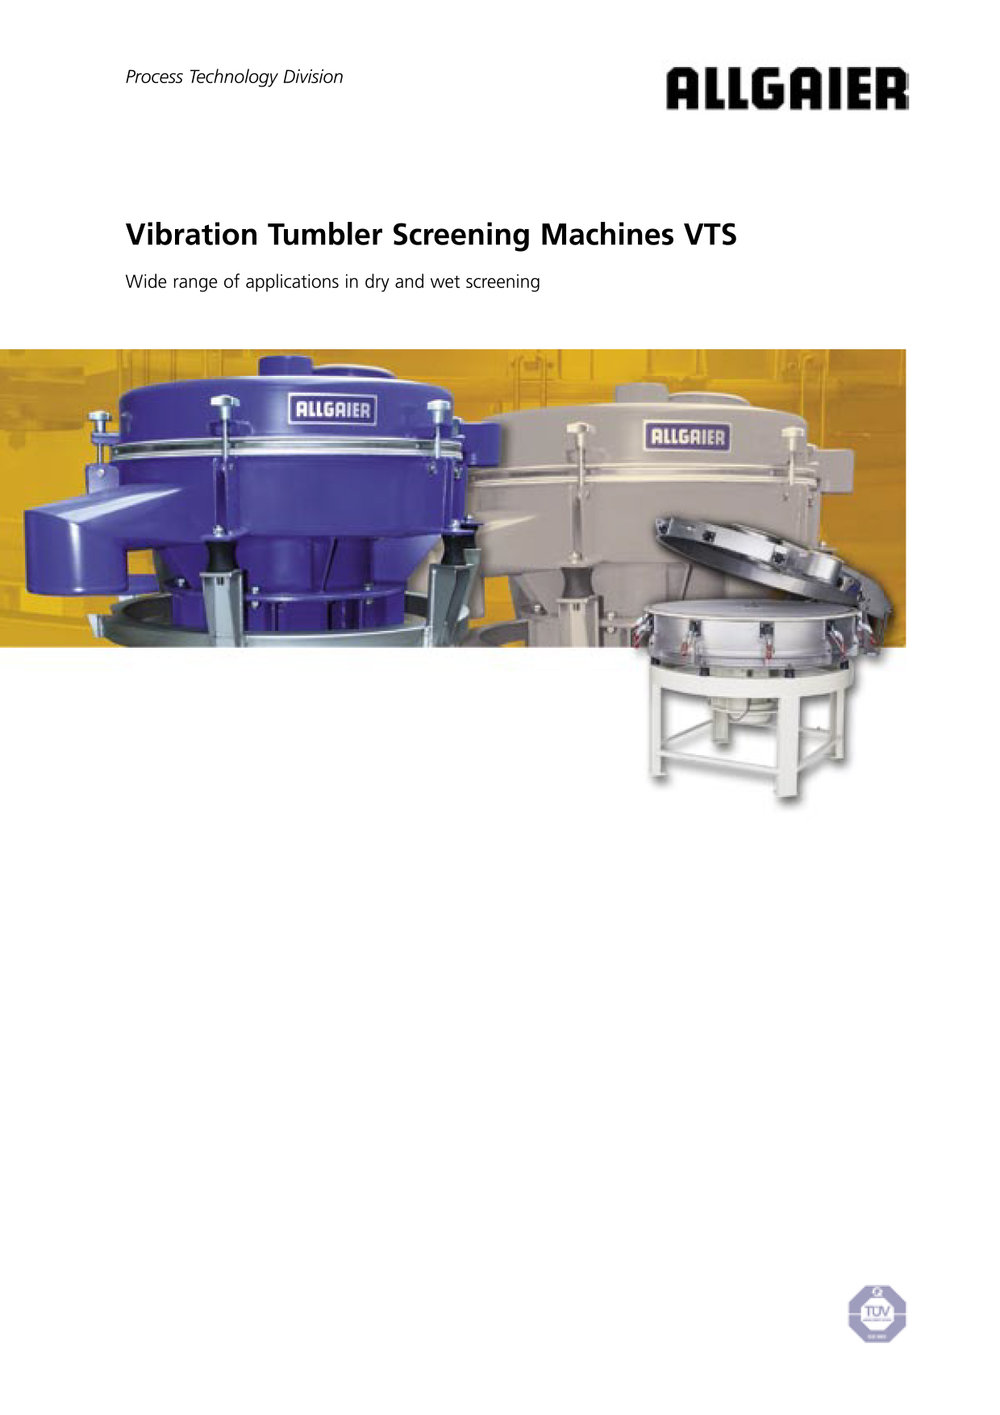 Vibration Tumbler Screening Machines VTS